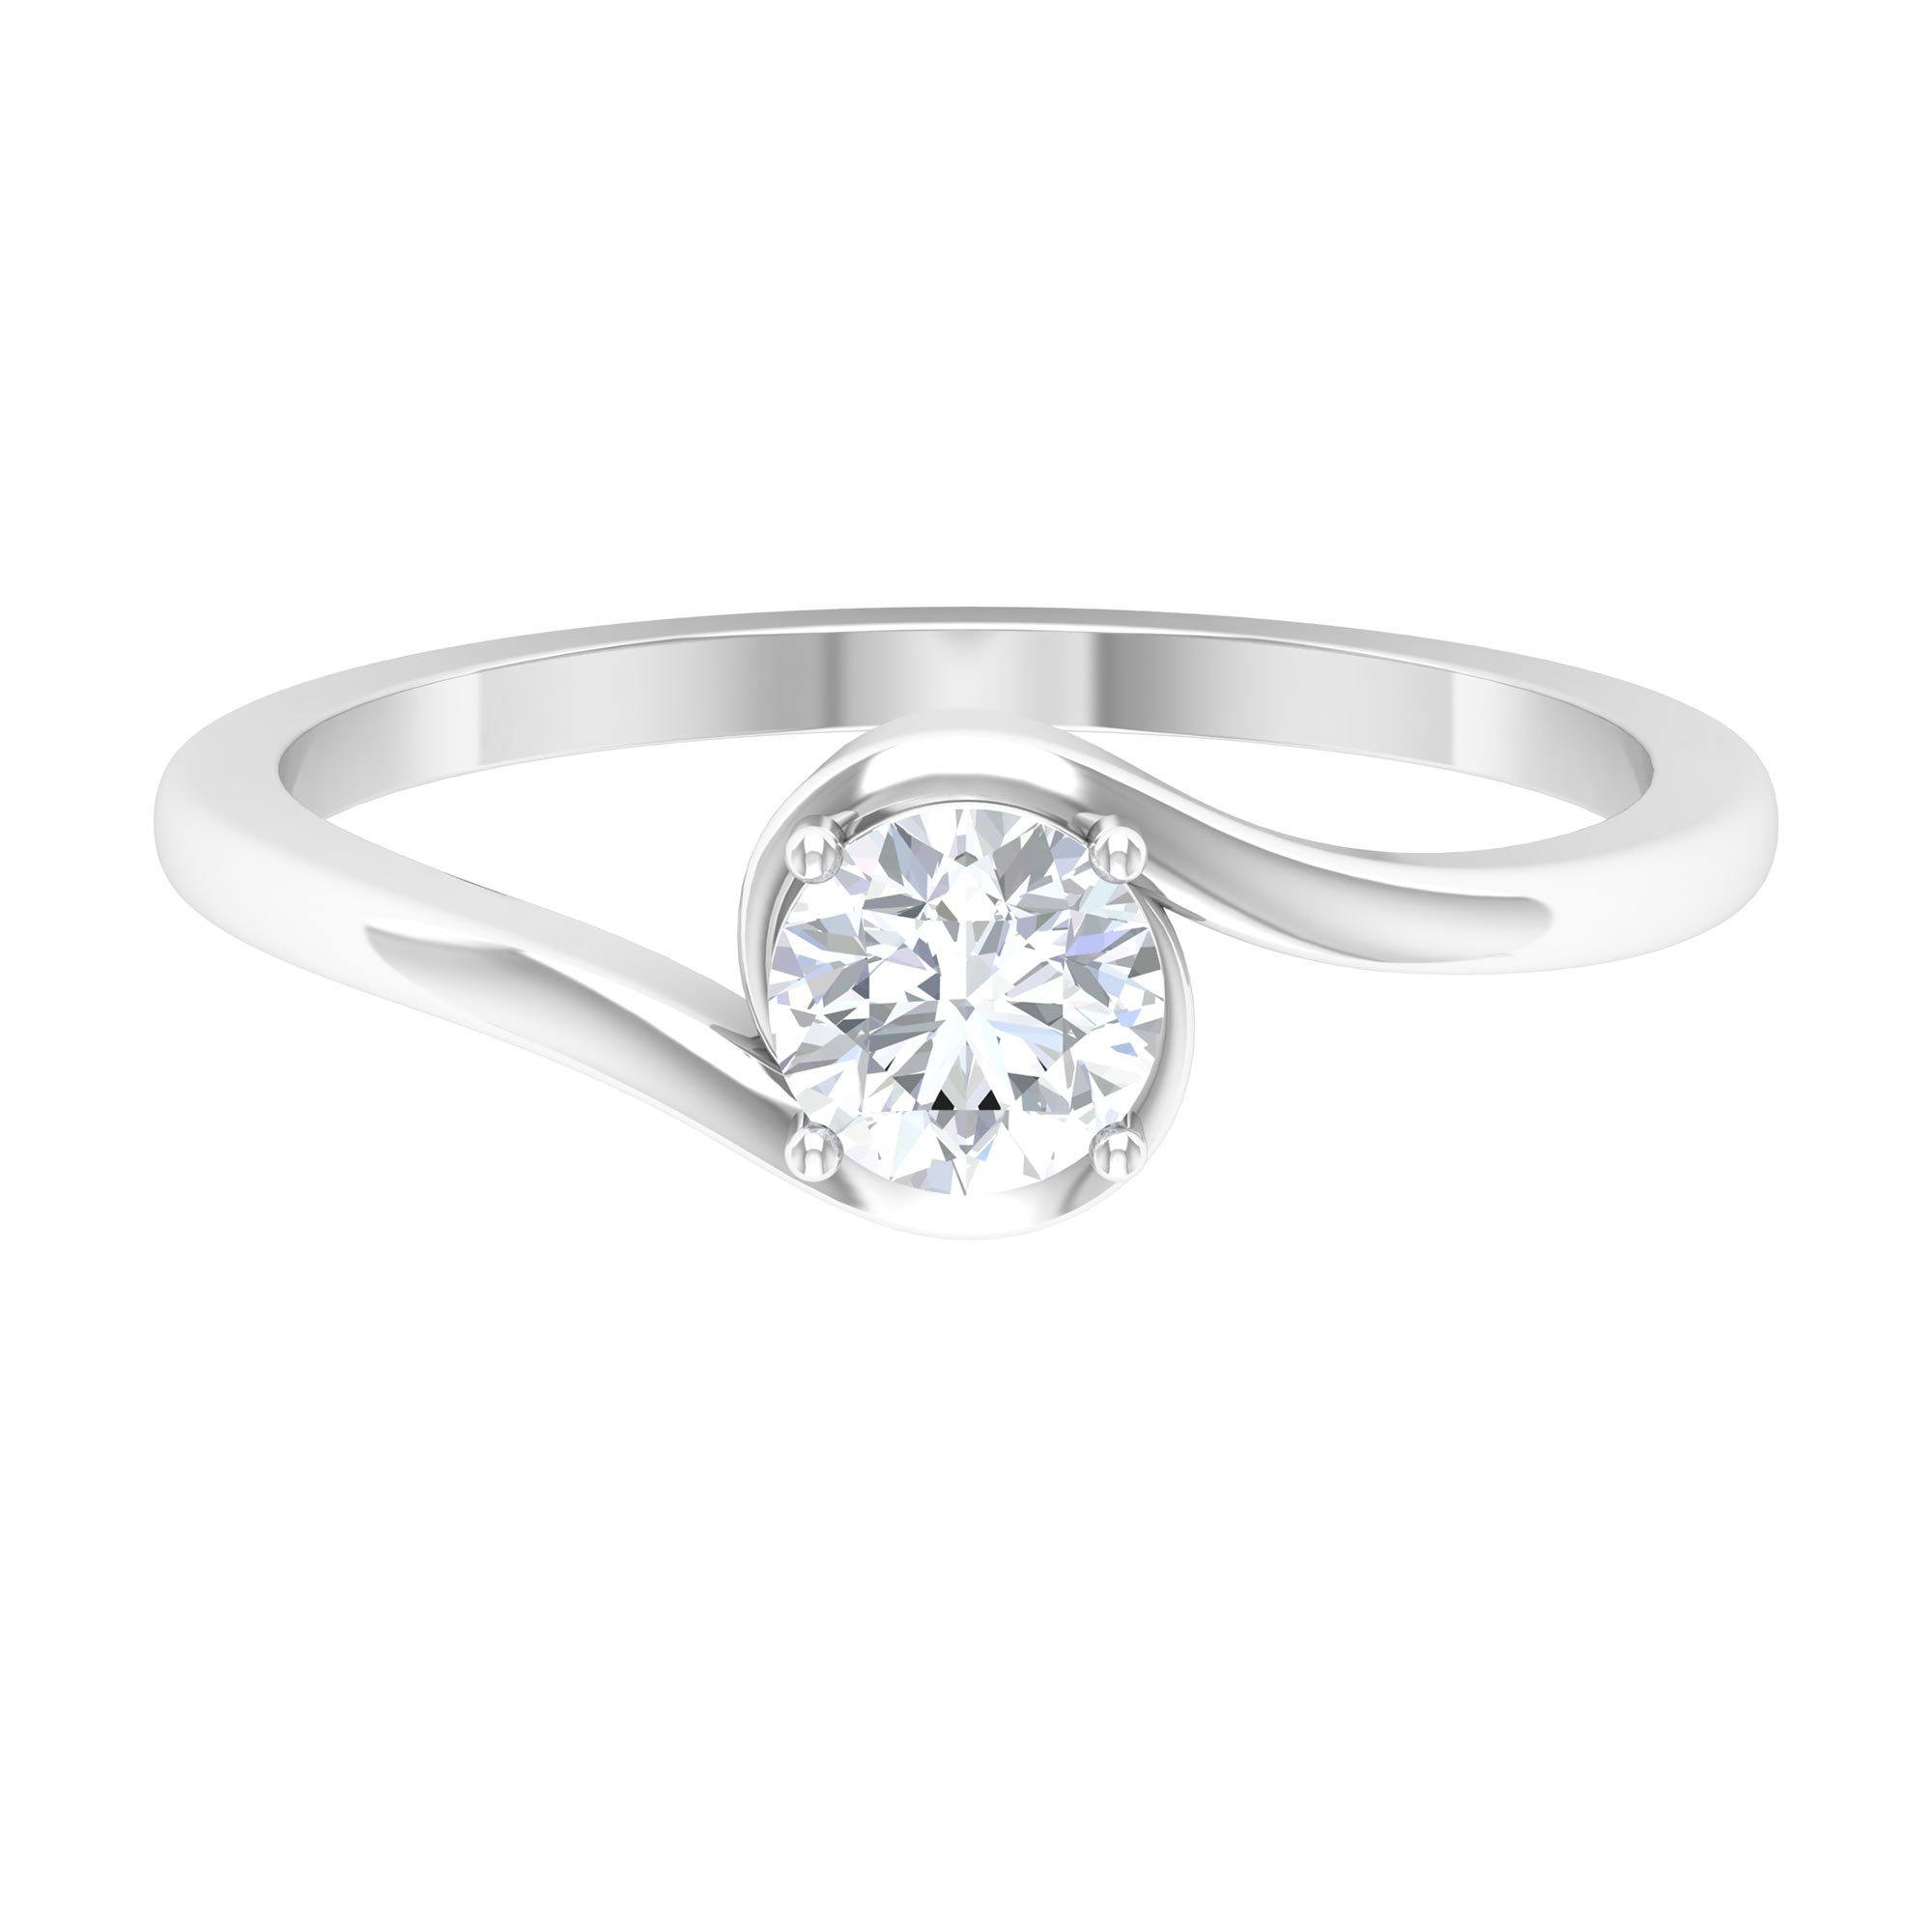 1/2 CT Diamond Solitaire Bypass Ring in 4 Prong Setting